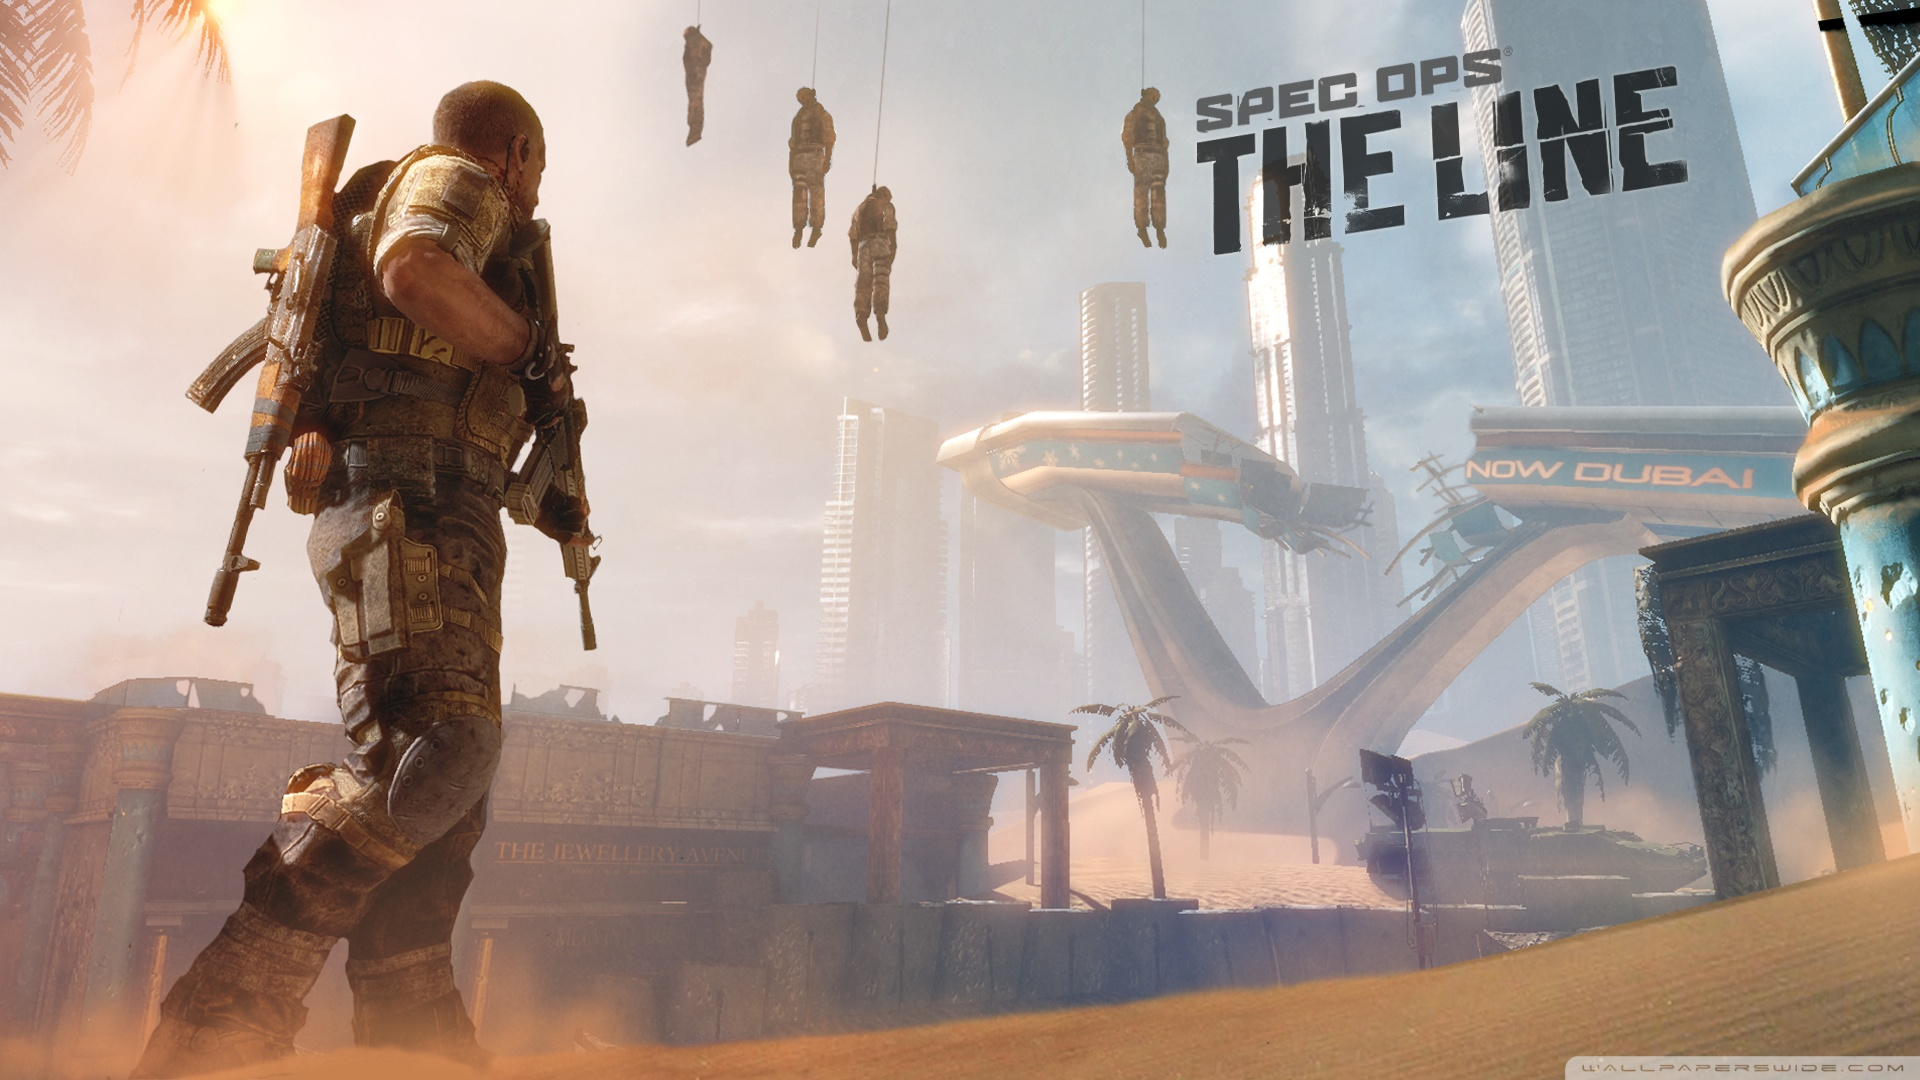 Spec Ops The Line HD Wallpaper 4   1920 X 1080 stmednet 1920x1080